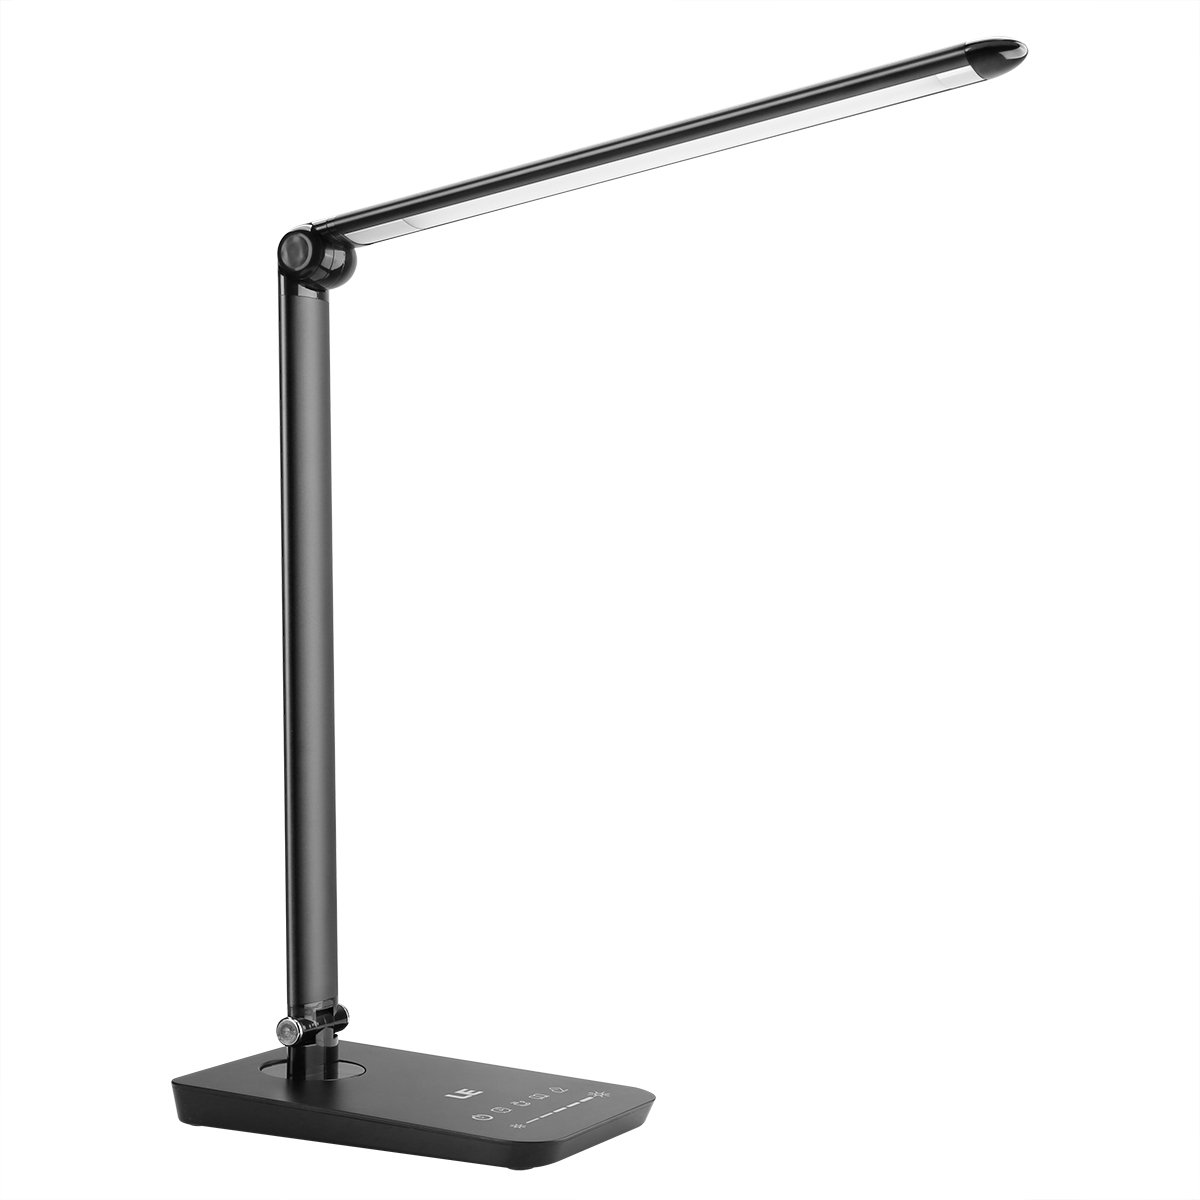 LE Dimmable LED Desk Lamp, 3 Modes Table Light 7 Level Brightness Adjustable 8W Touch Control Panel Eye-care Folding Reading Relaxing Studying Bedroom Bedside Office Black